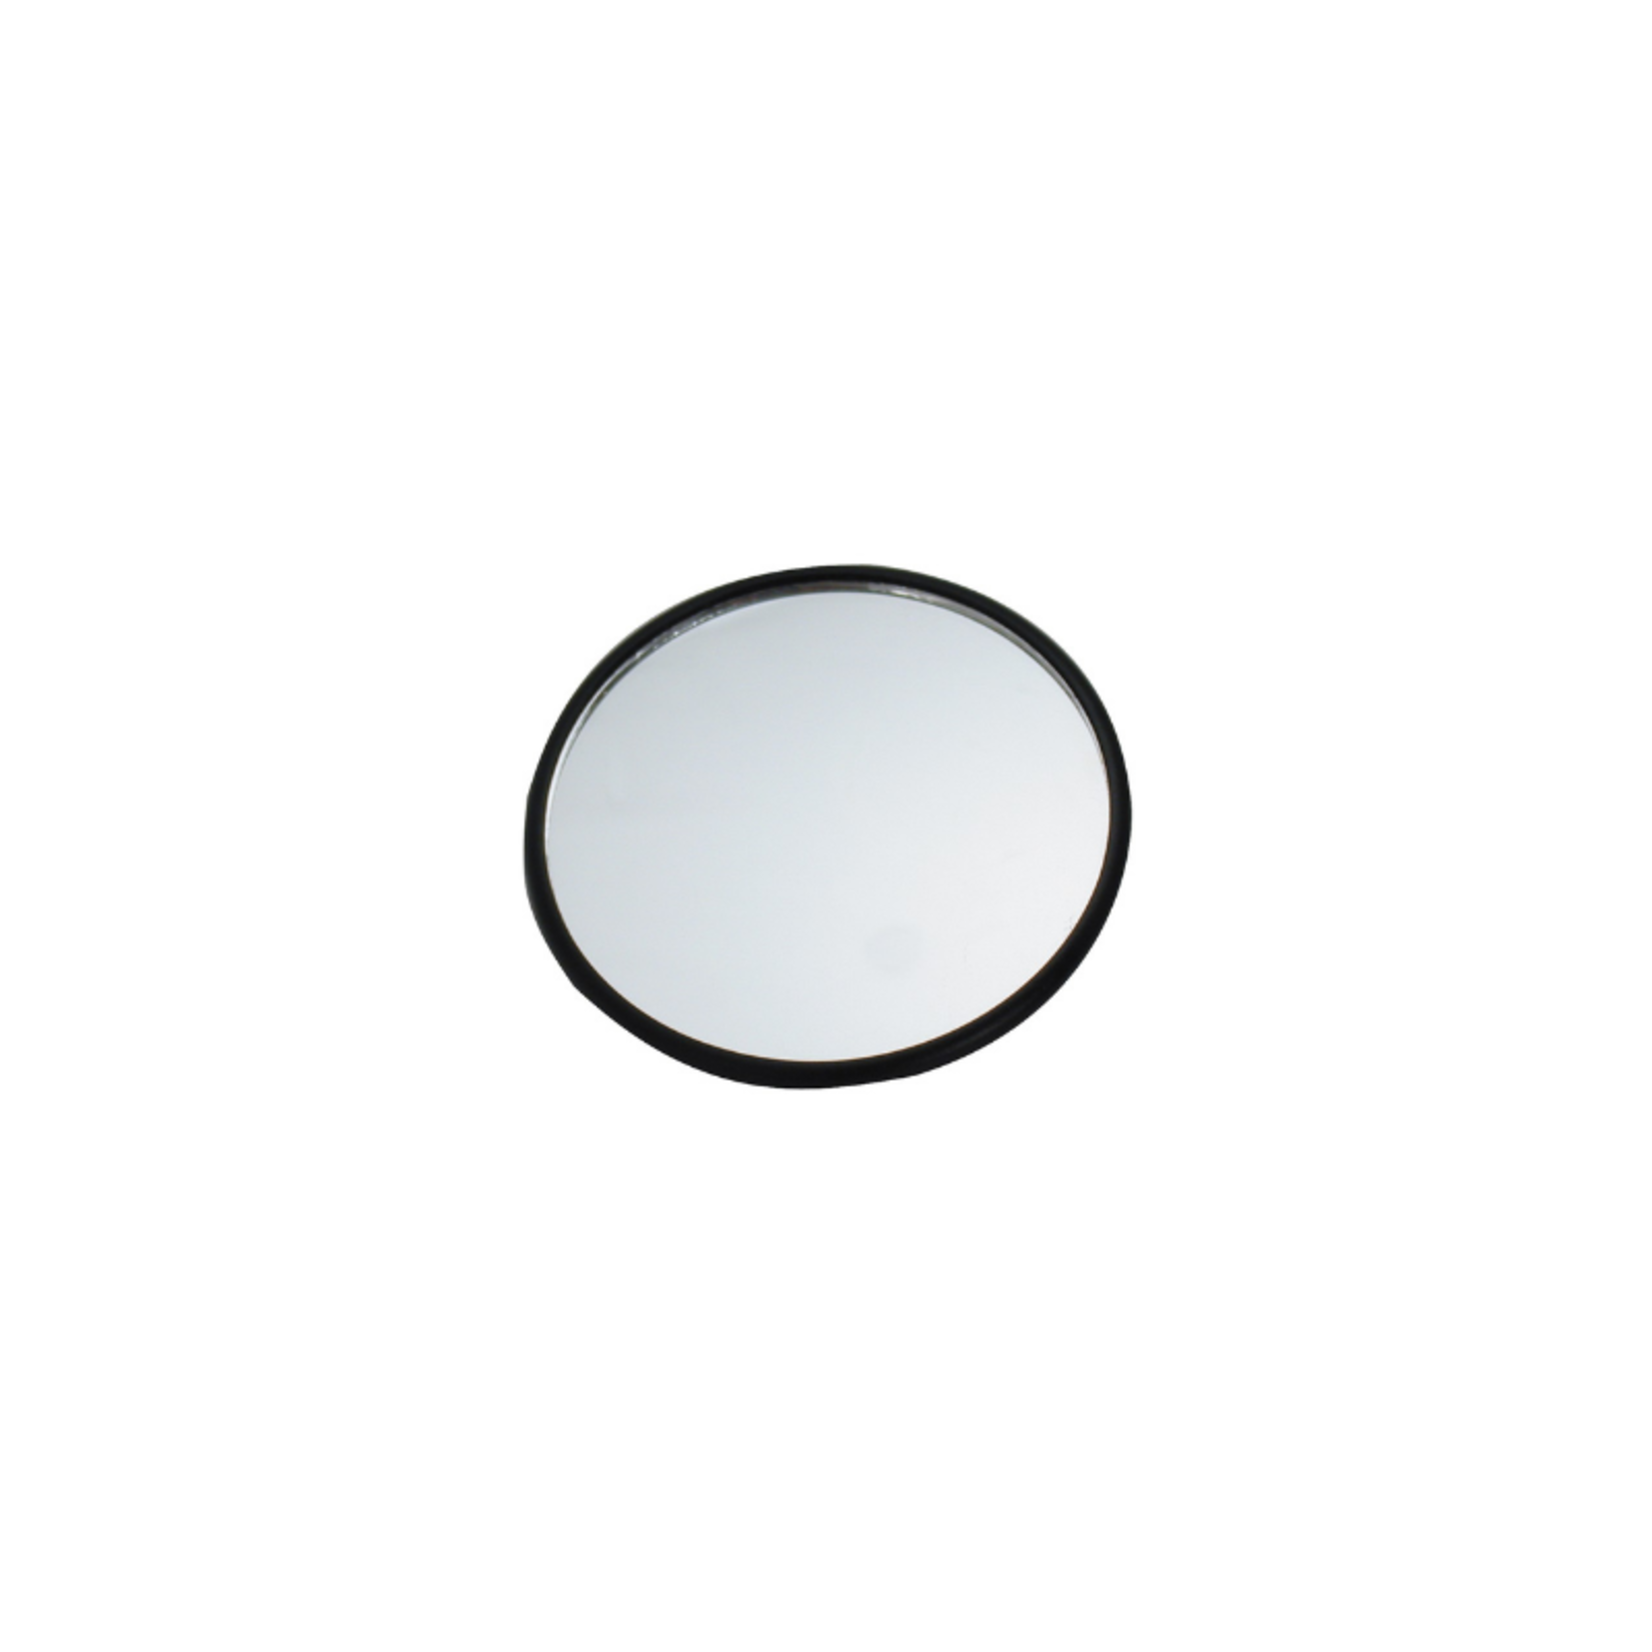 Mirrycle Replacement Mirror